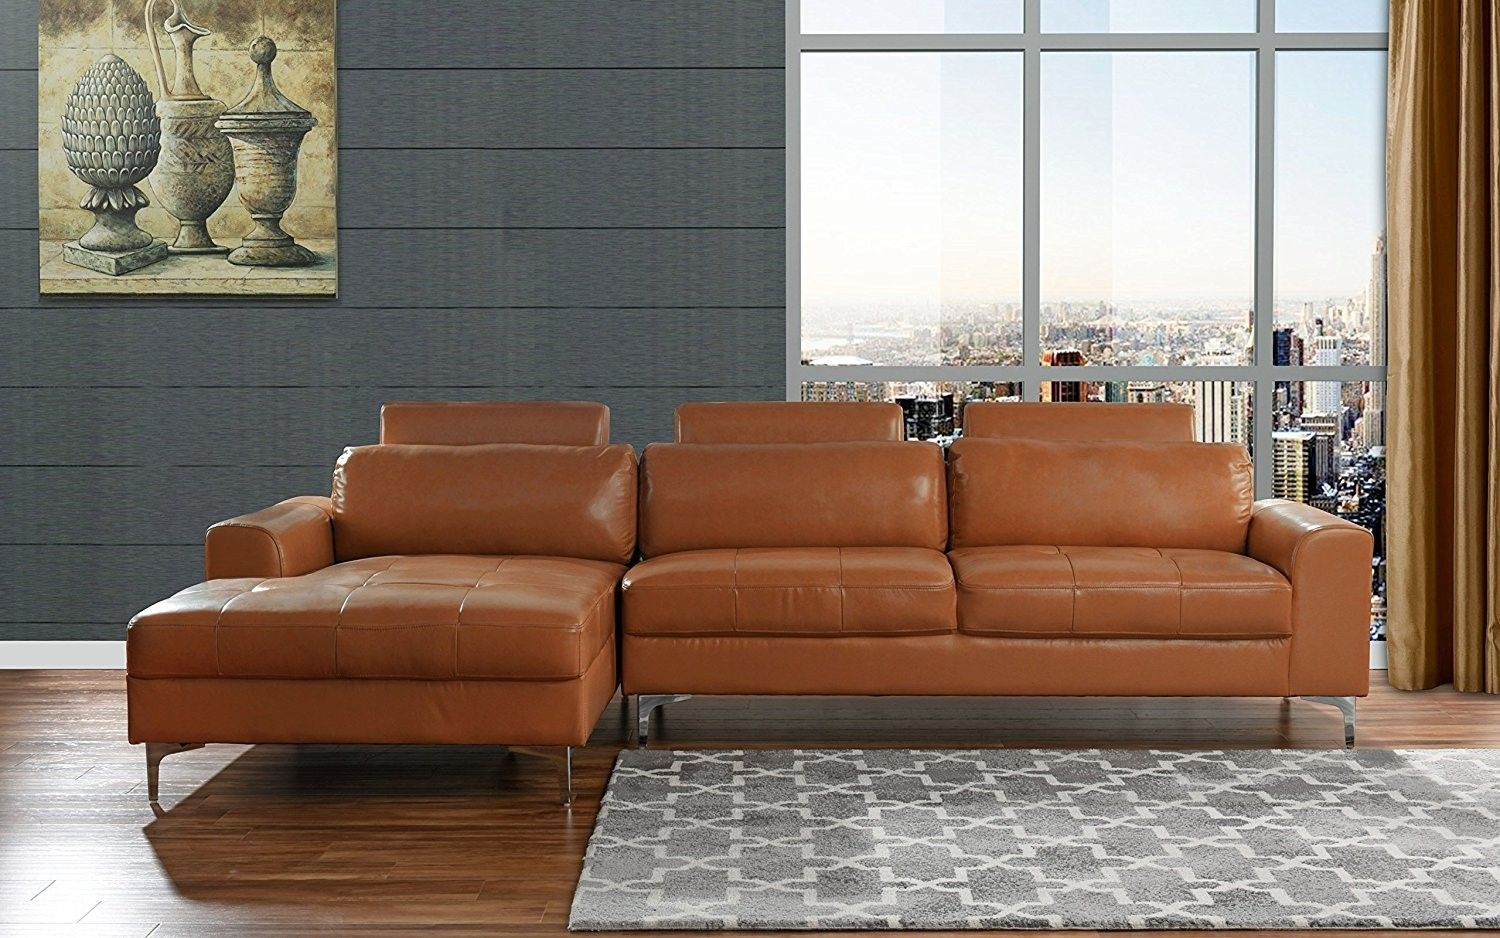 Modern Large Leather Sectional Sofa L Shape Couch With Extra Wide Chaise Lounge Camel Jet